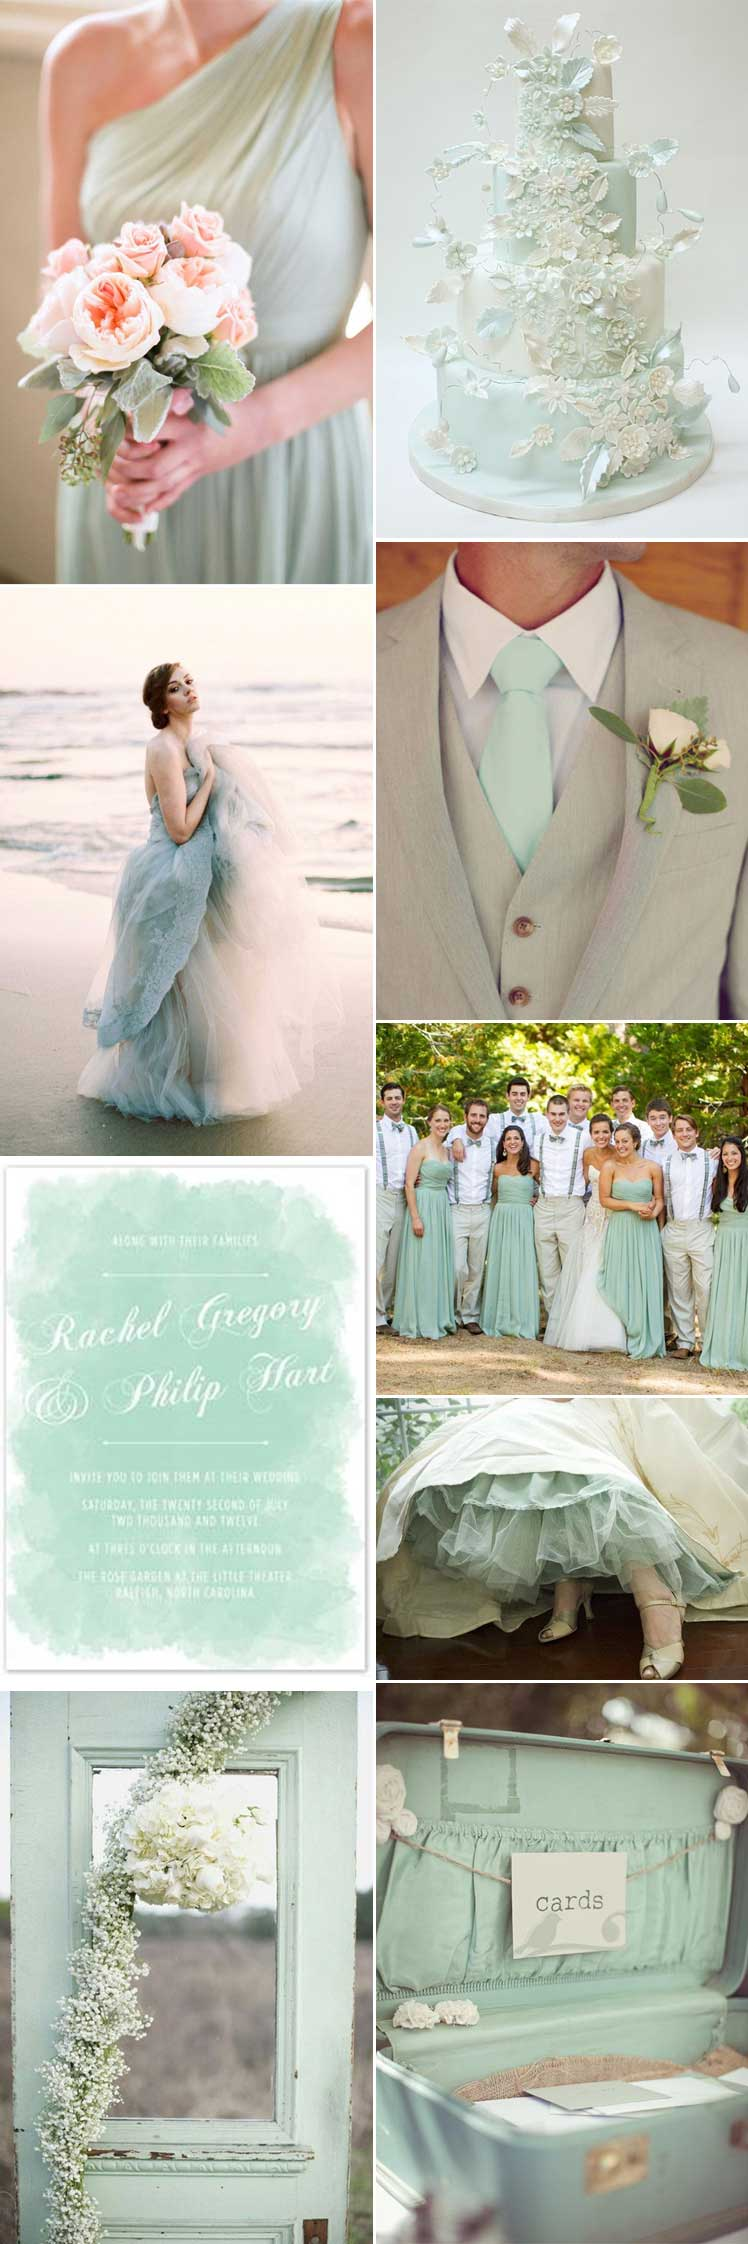 Beautiful inspiration for a seafoam wedding theme